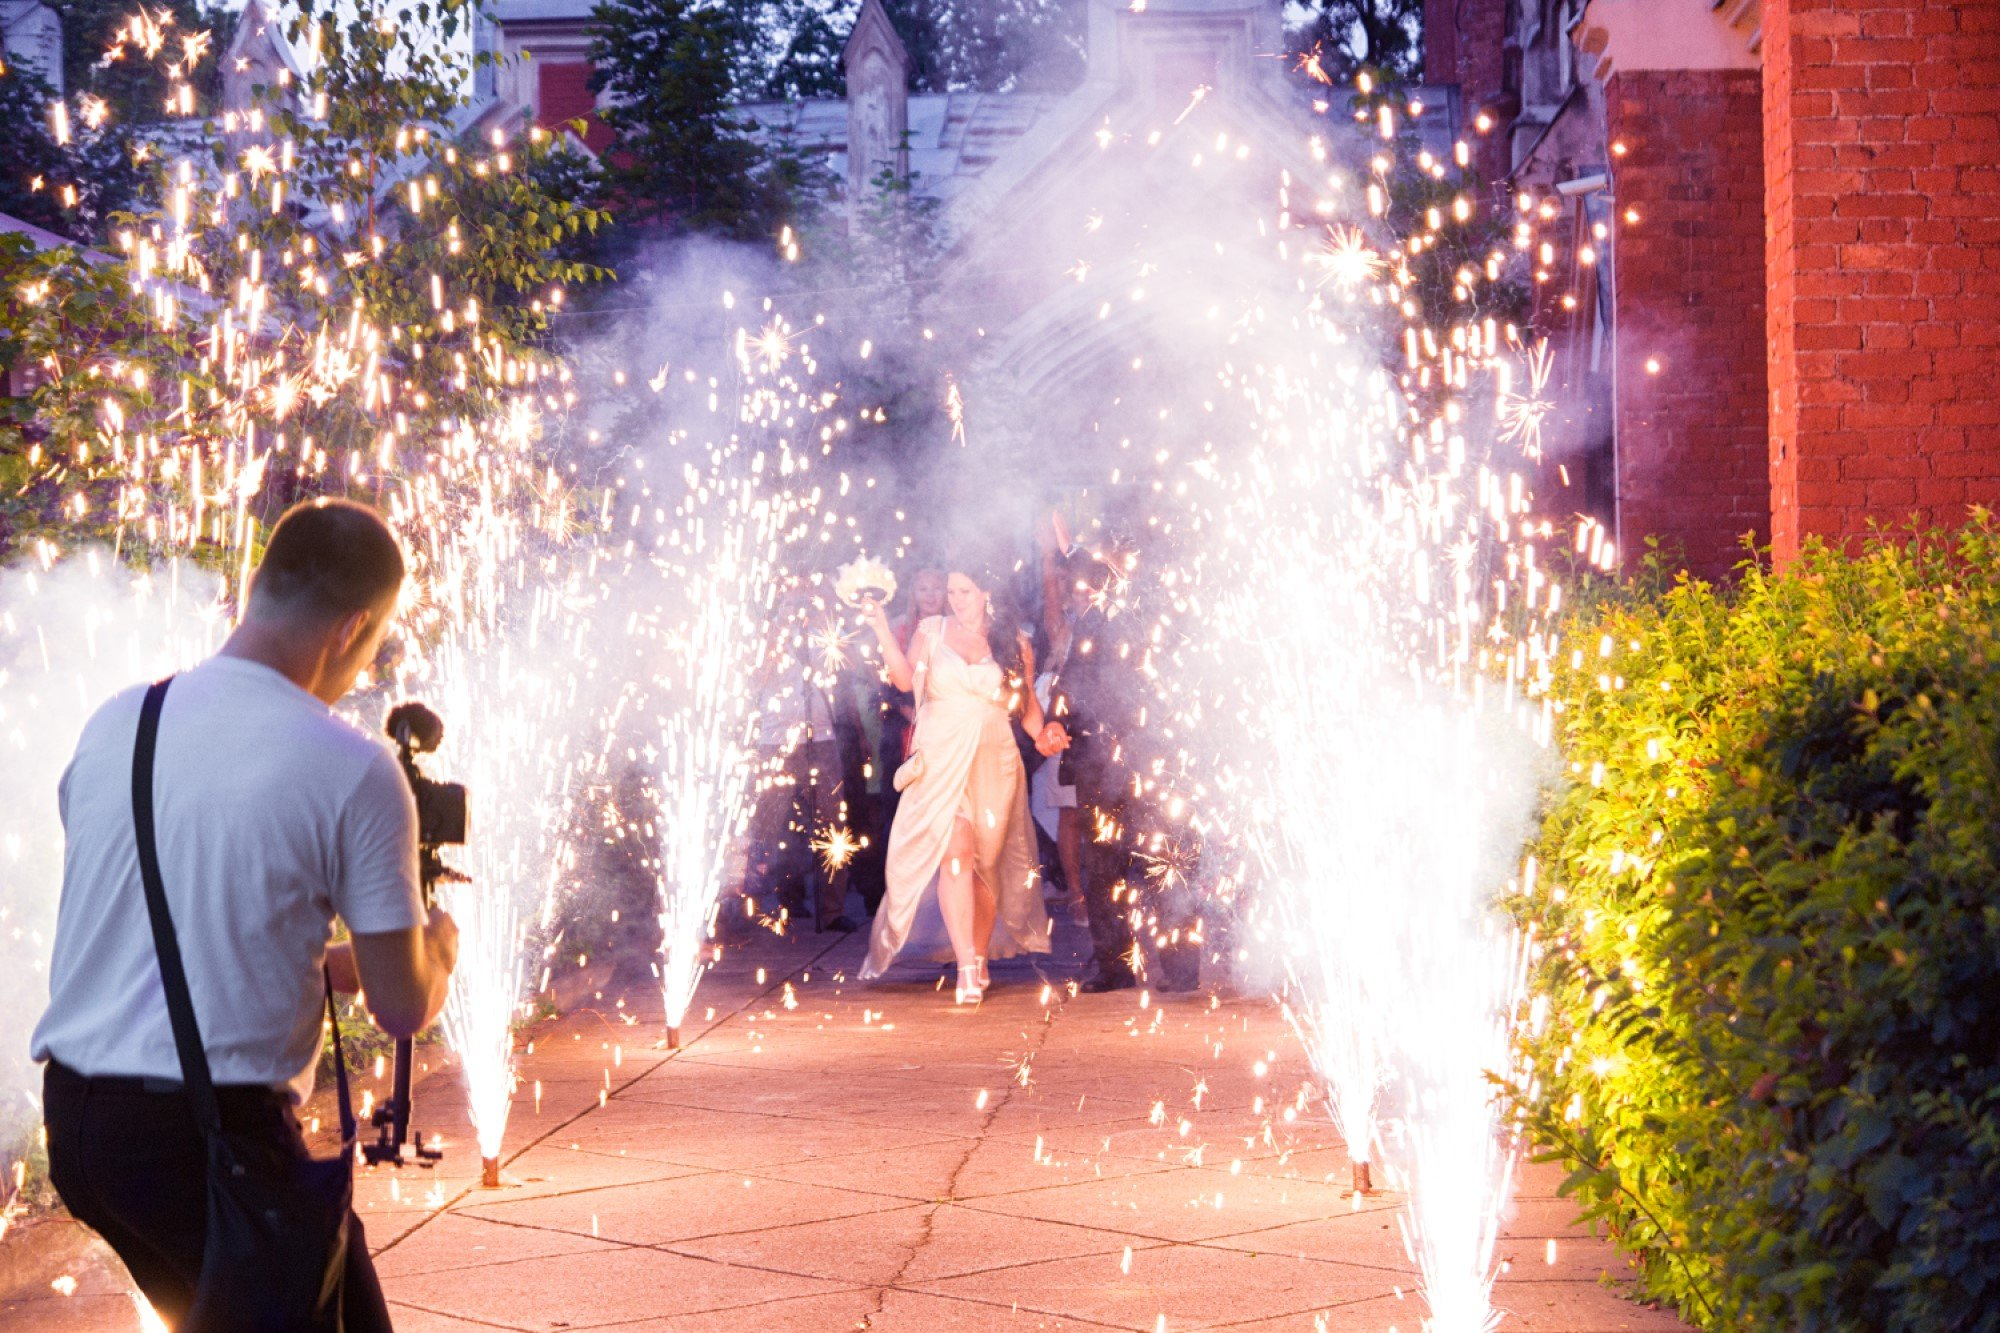 Taking a picture of a woman with sparklers